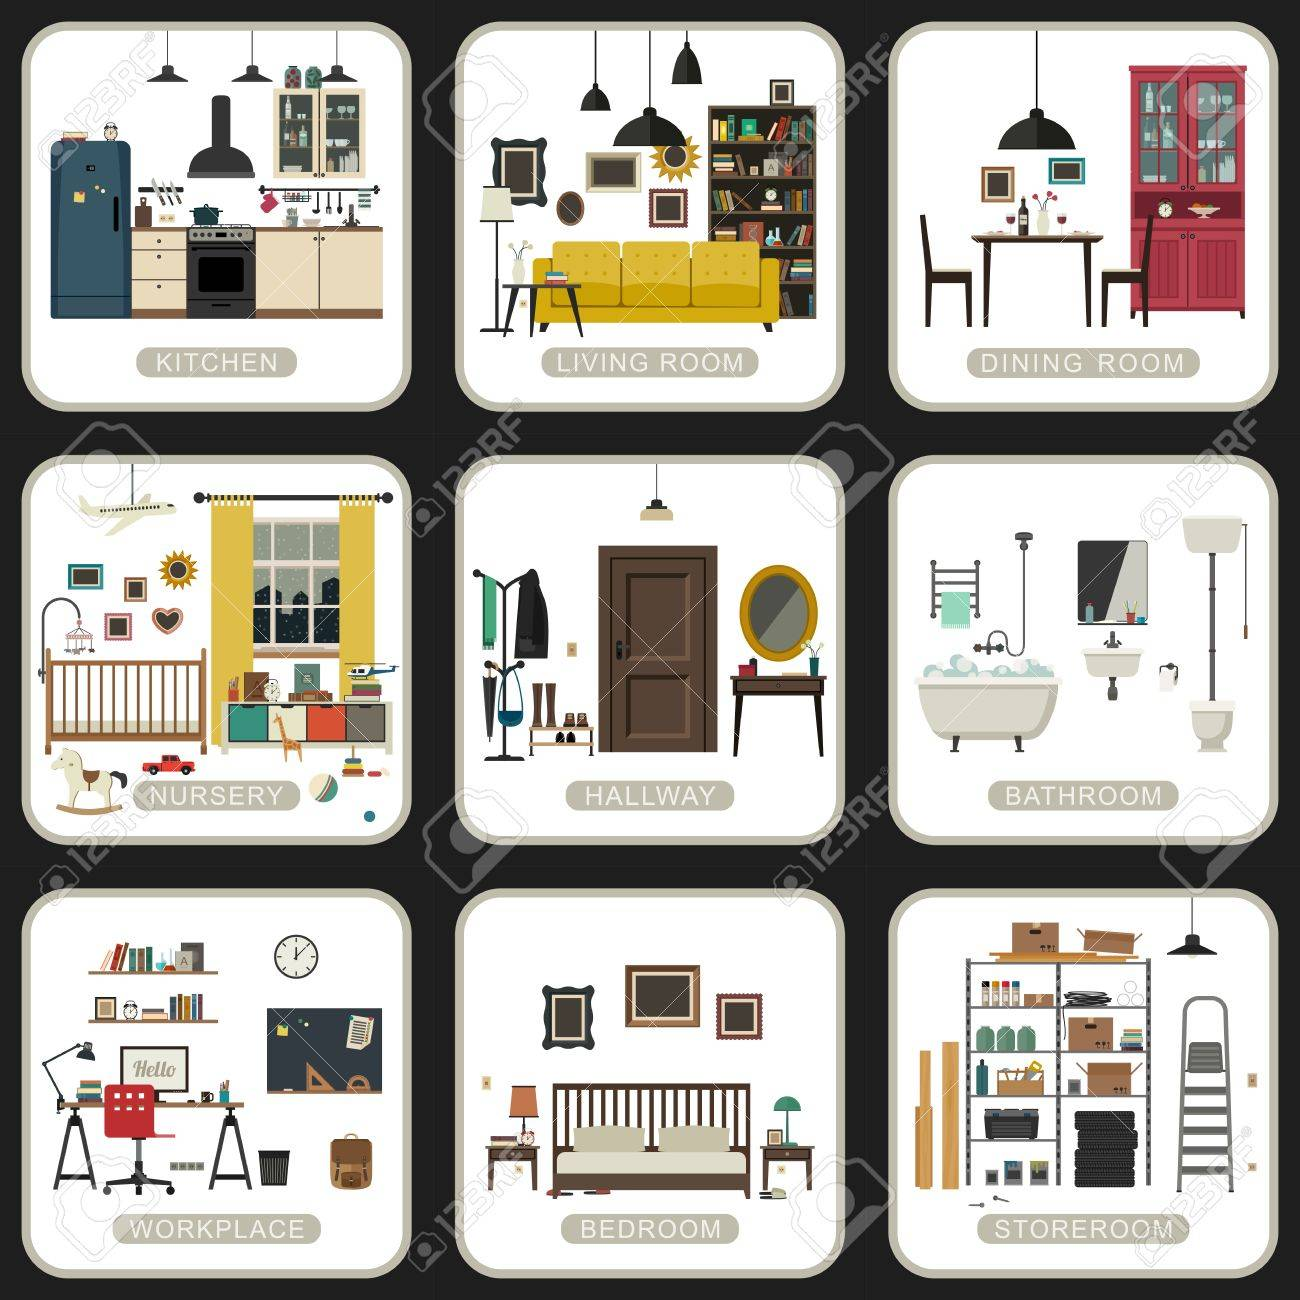 Set of interior rooms on white backgrounds. Vector flat illustrations of bathroom, living room, kitchen, etc. - 54501305